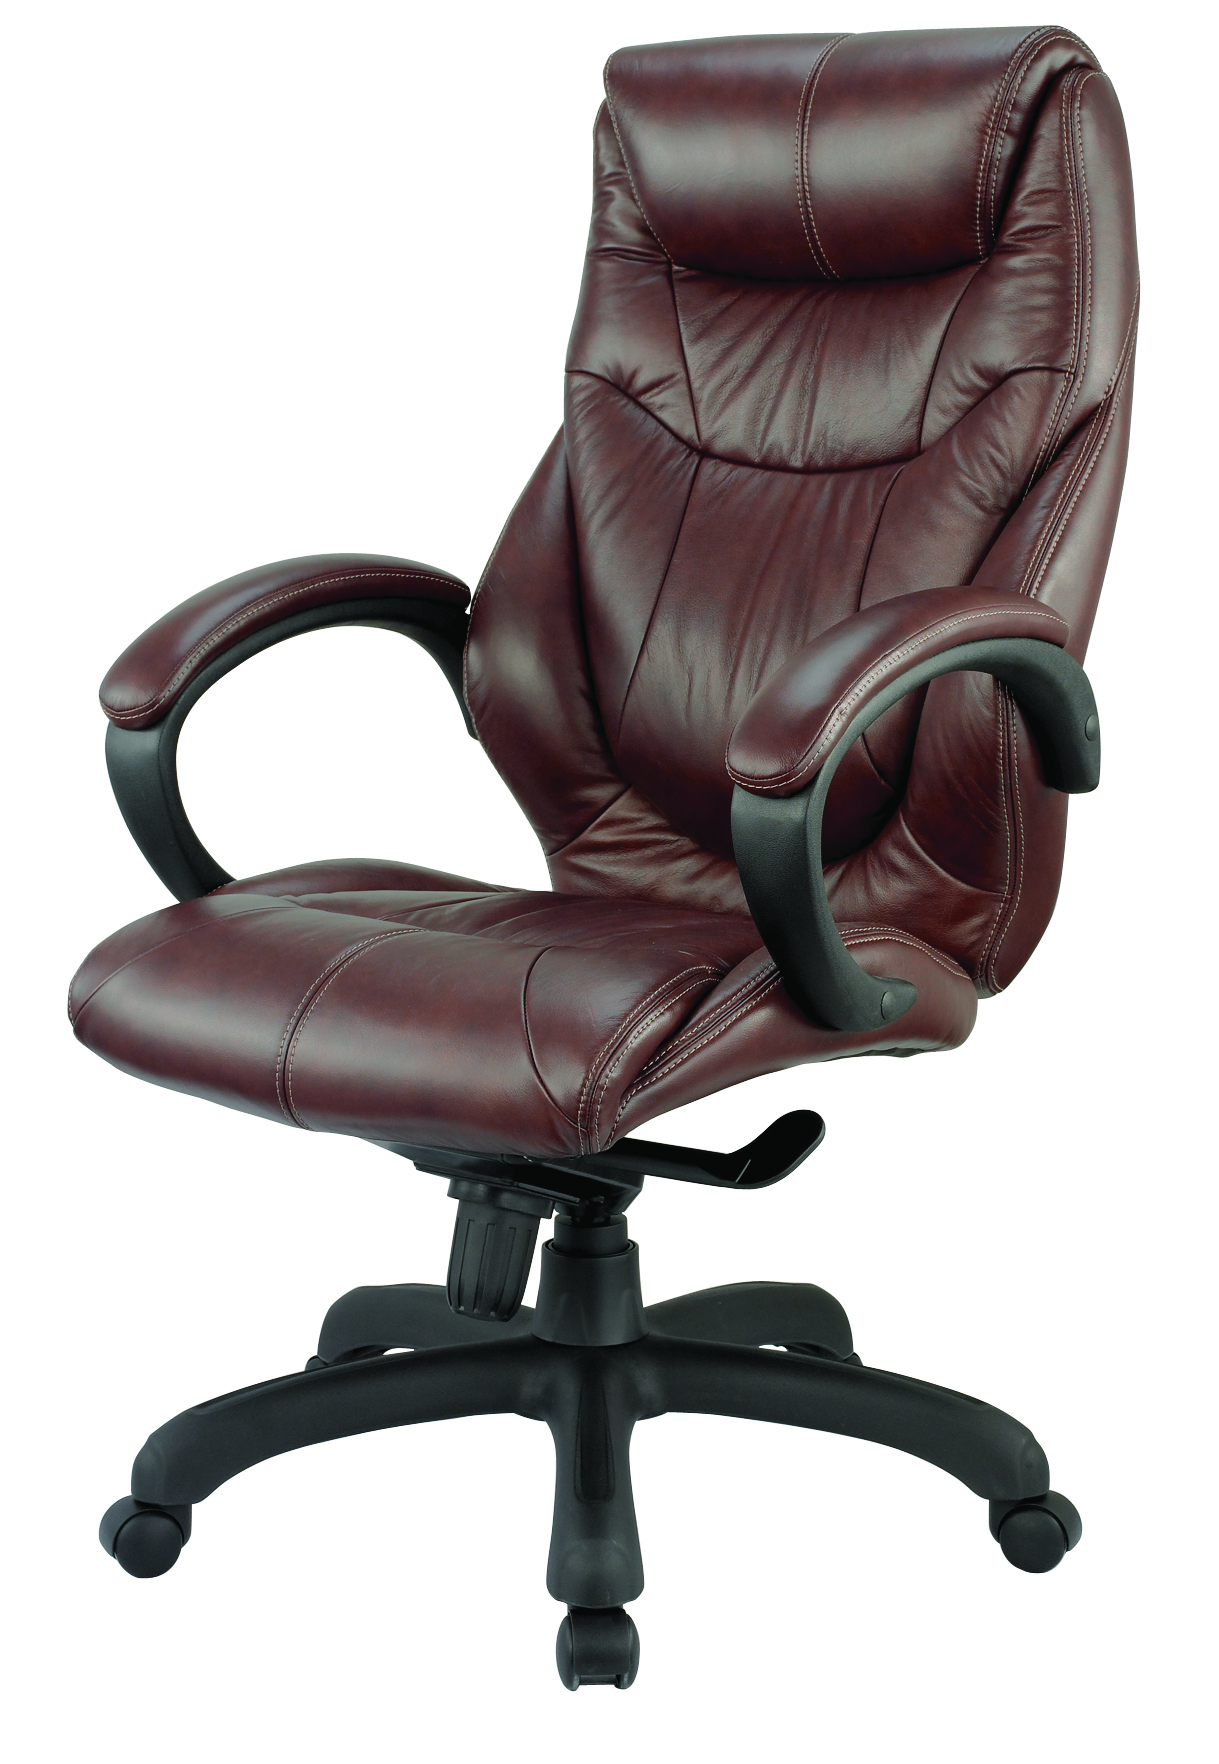 Executive Chairs Office Chairs Executive Office Chairs Leather